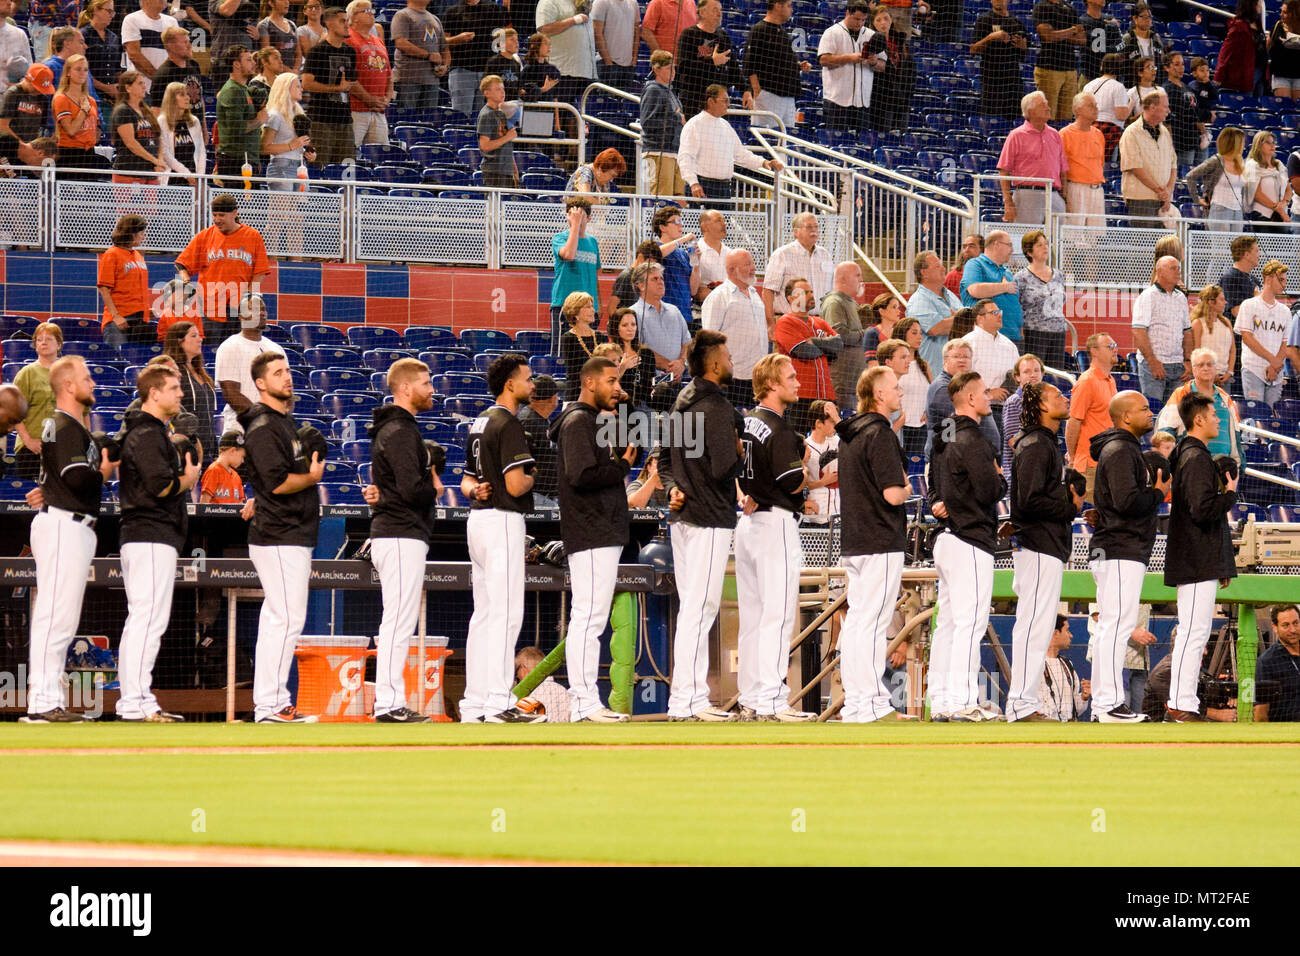 Miami, Florida, USA. 27th May, 2018. Miami Marlins team stand up during the national anthem during the baseball match between Nationals Washington and Miami Marlin at Marlins Park. Credit: Fernando Oduber/SOPA Images/ZUMA Wire/Alamy Live News - Stock Image